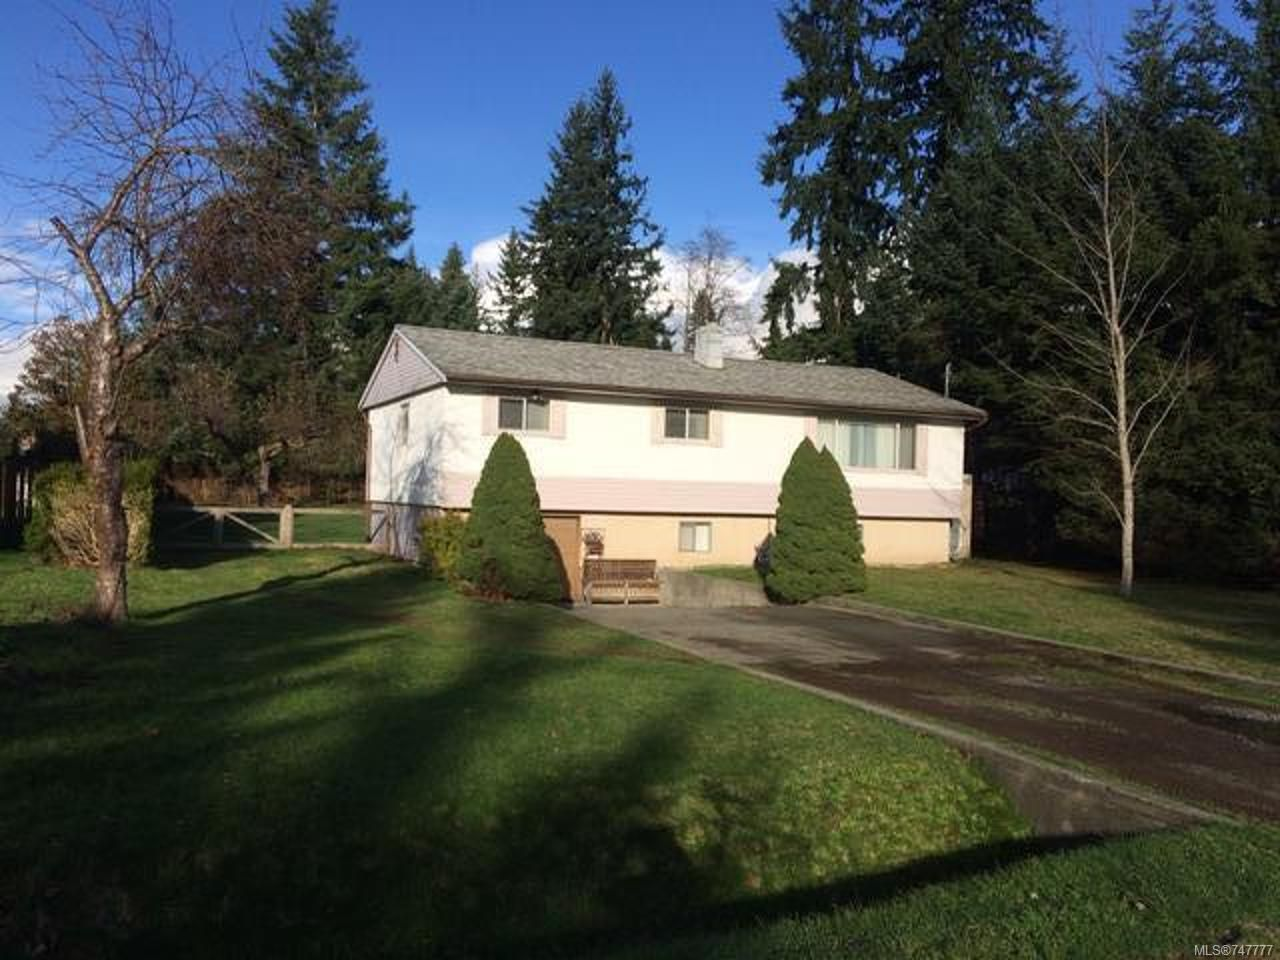 Main Photo: 1630 Dolora Rd in CAMPBELL RIVER: CR Campbell River West House for sale (Campbell River)  : MLS®# 747777